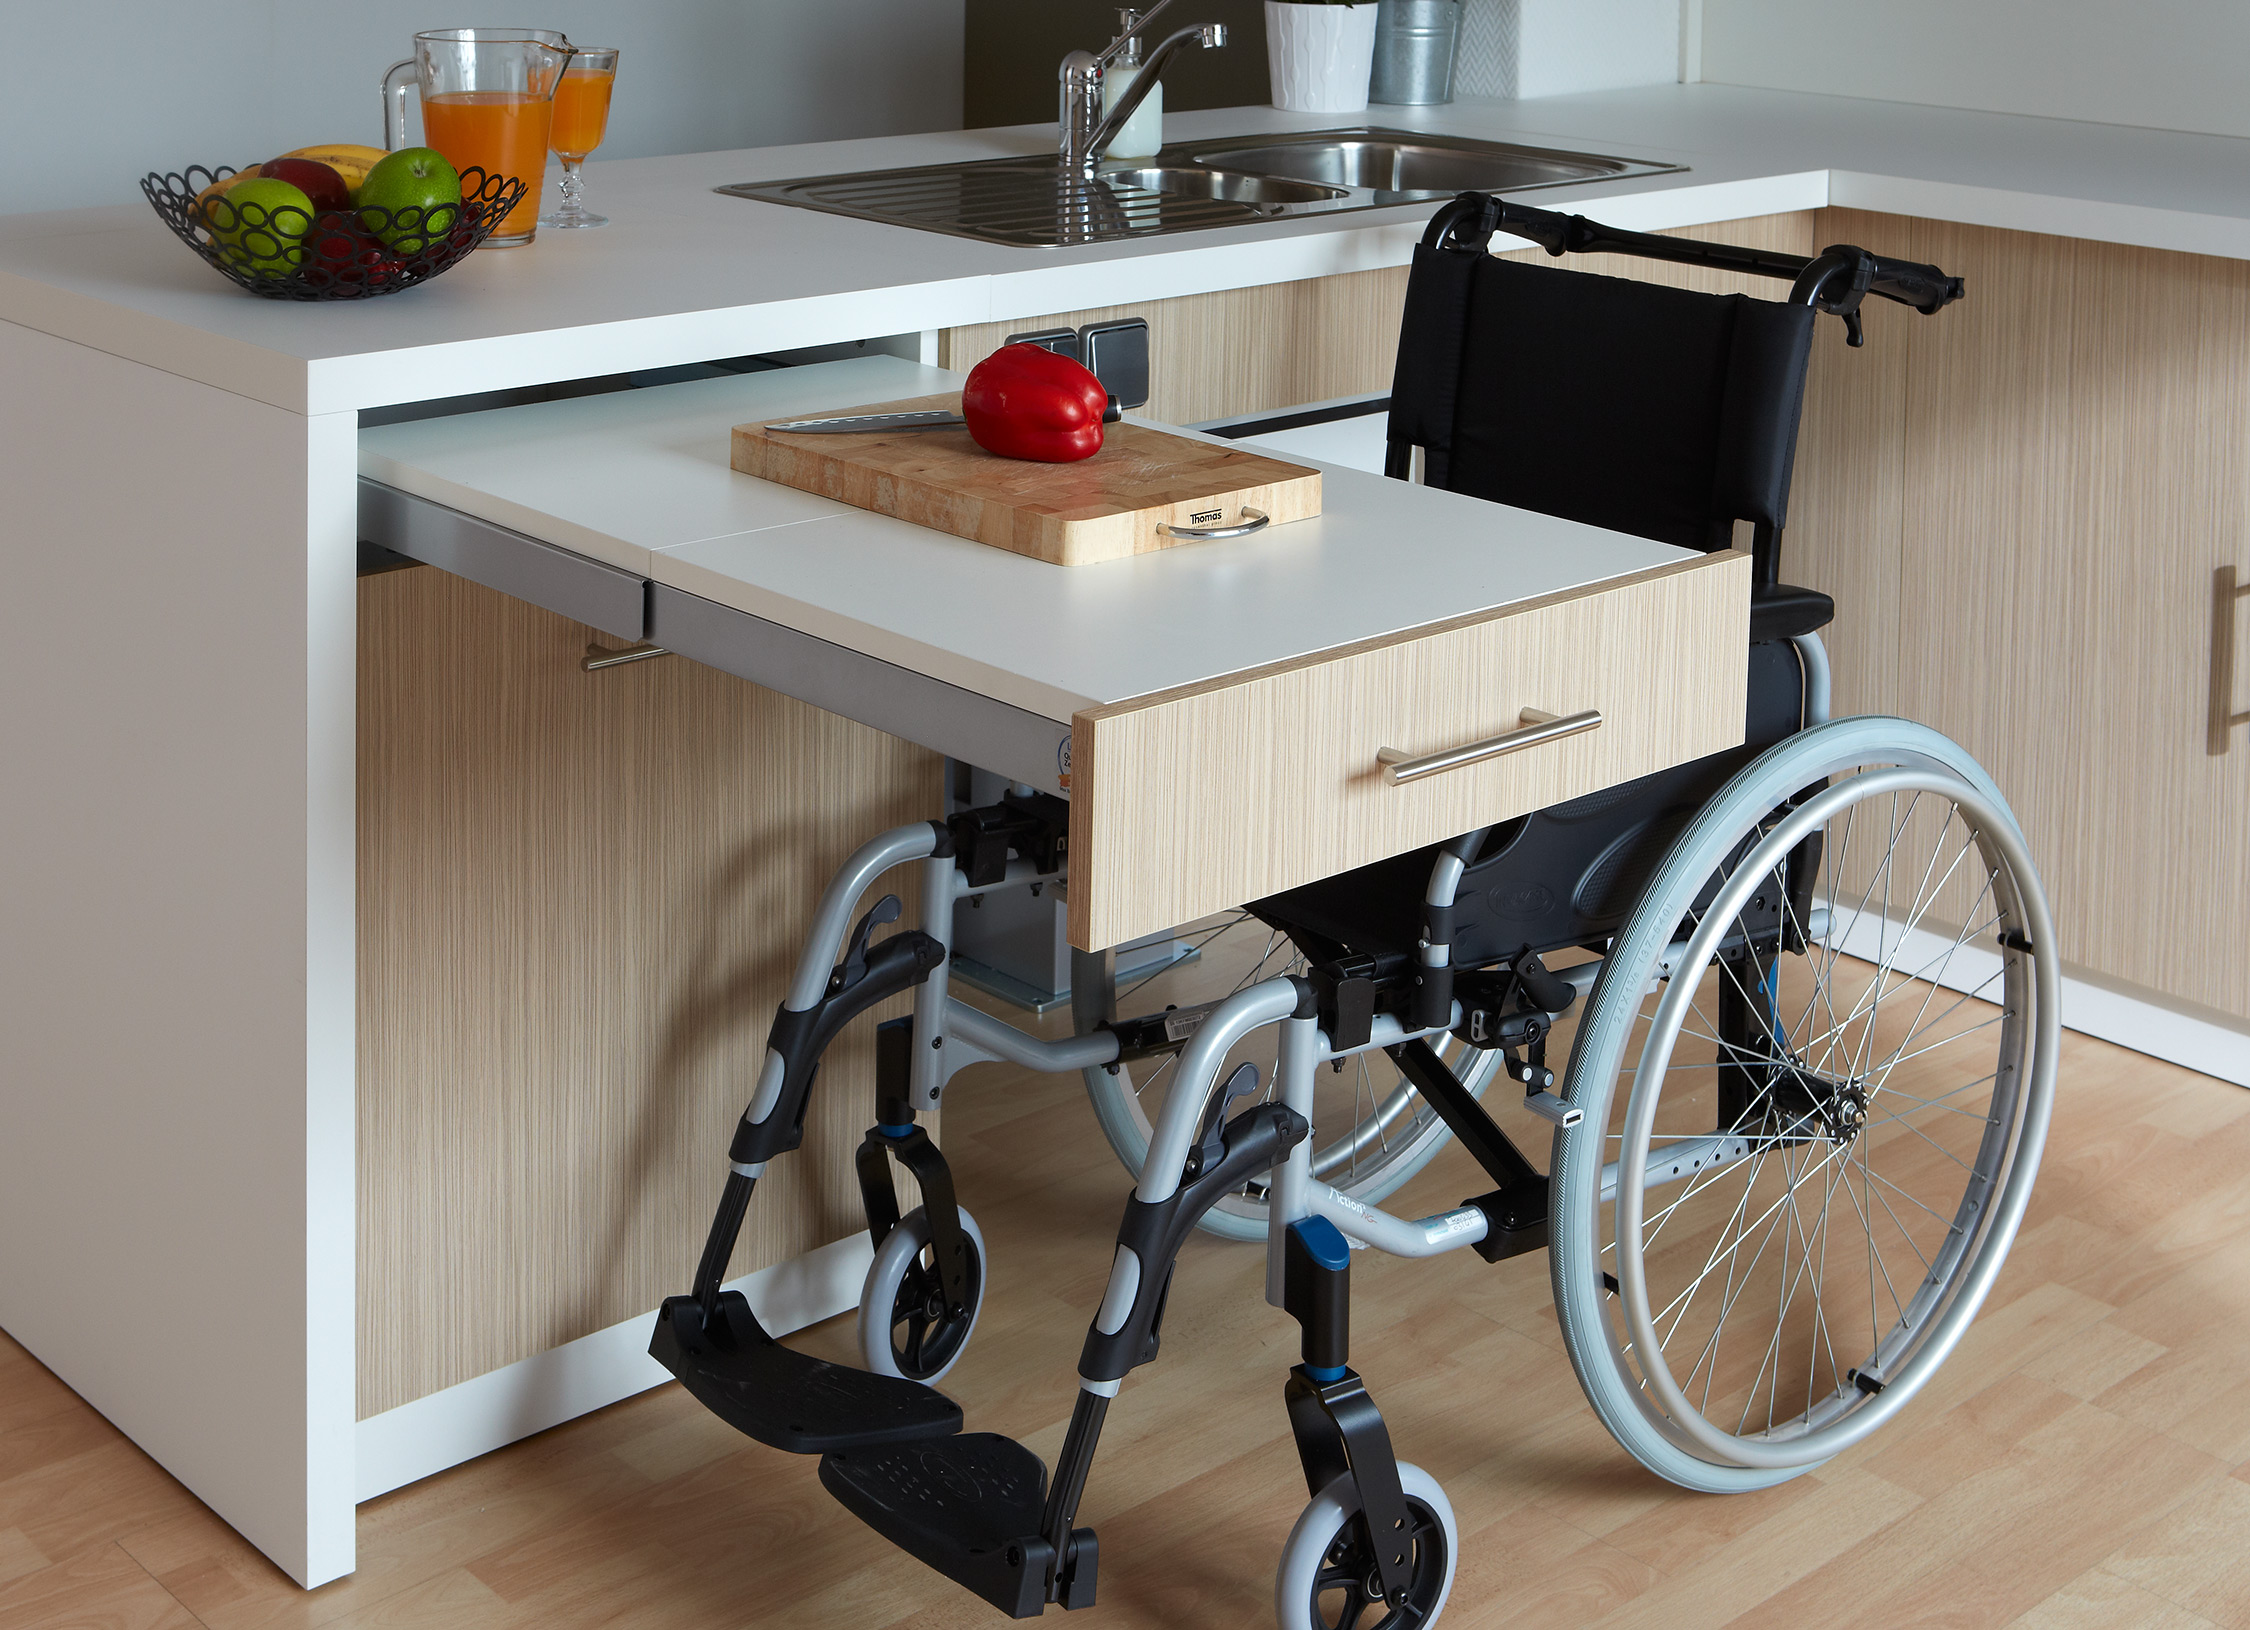 Cuisine adapt e pmr avec modulhome for Cuisine table escamotable